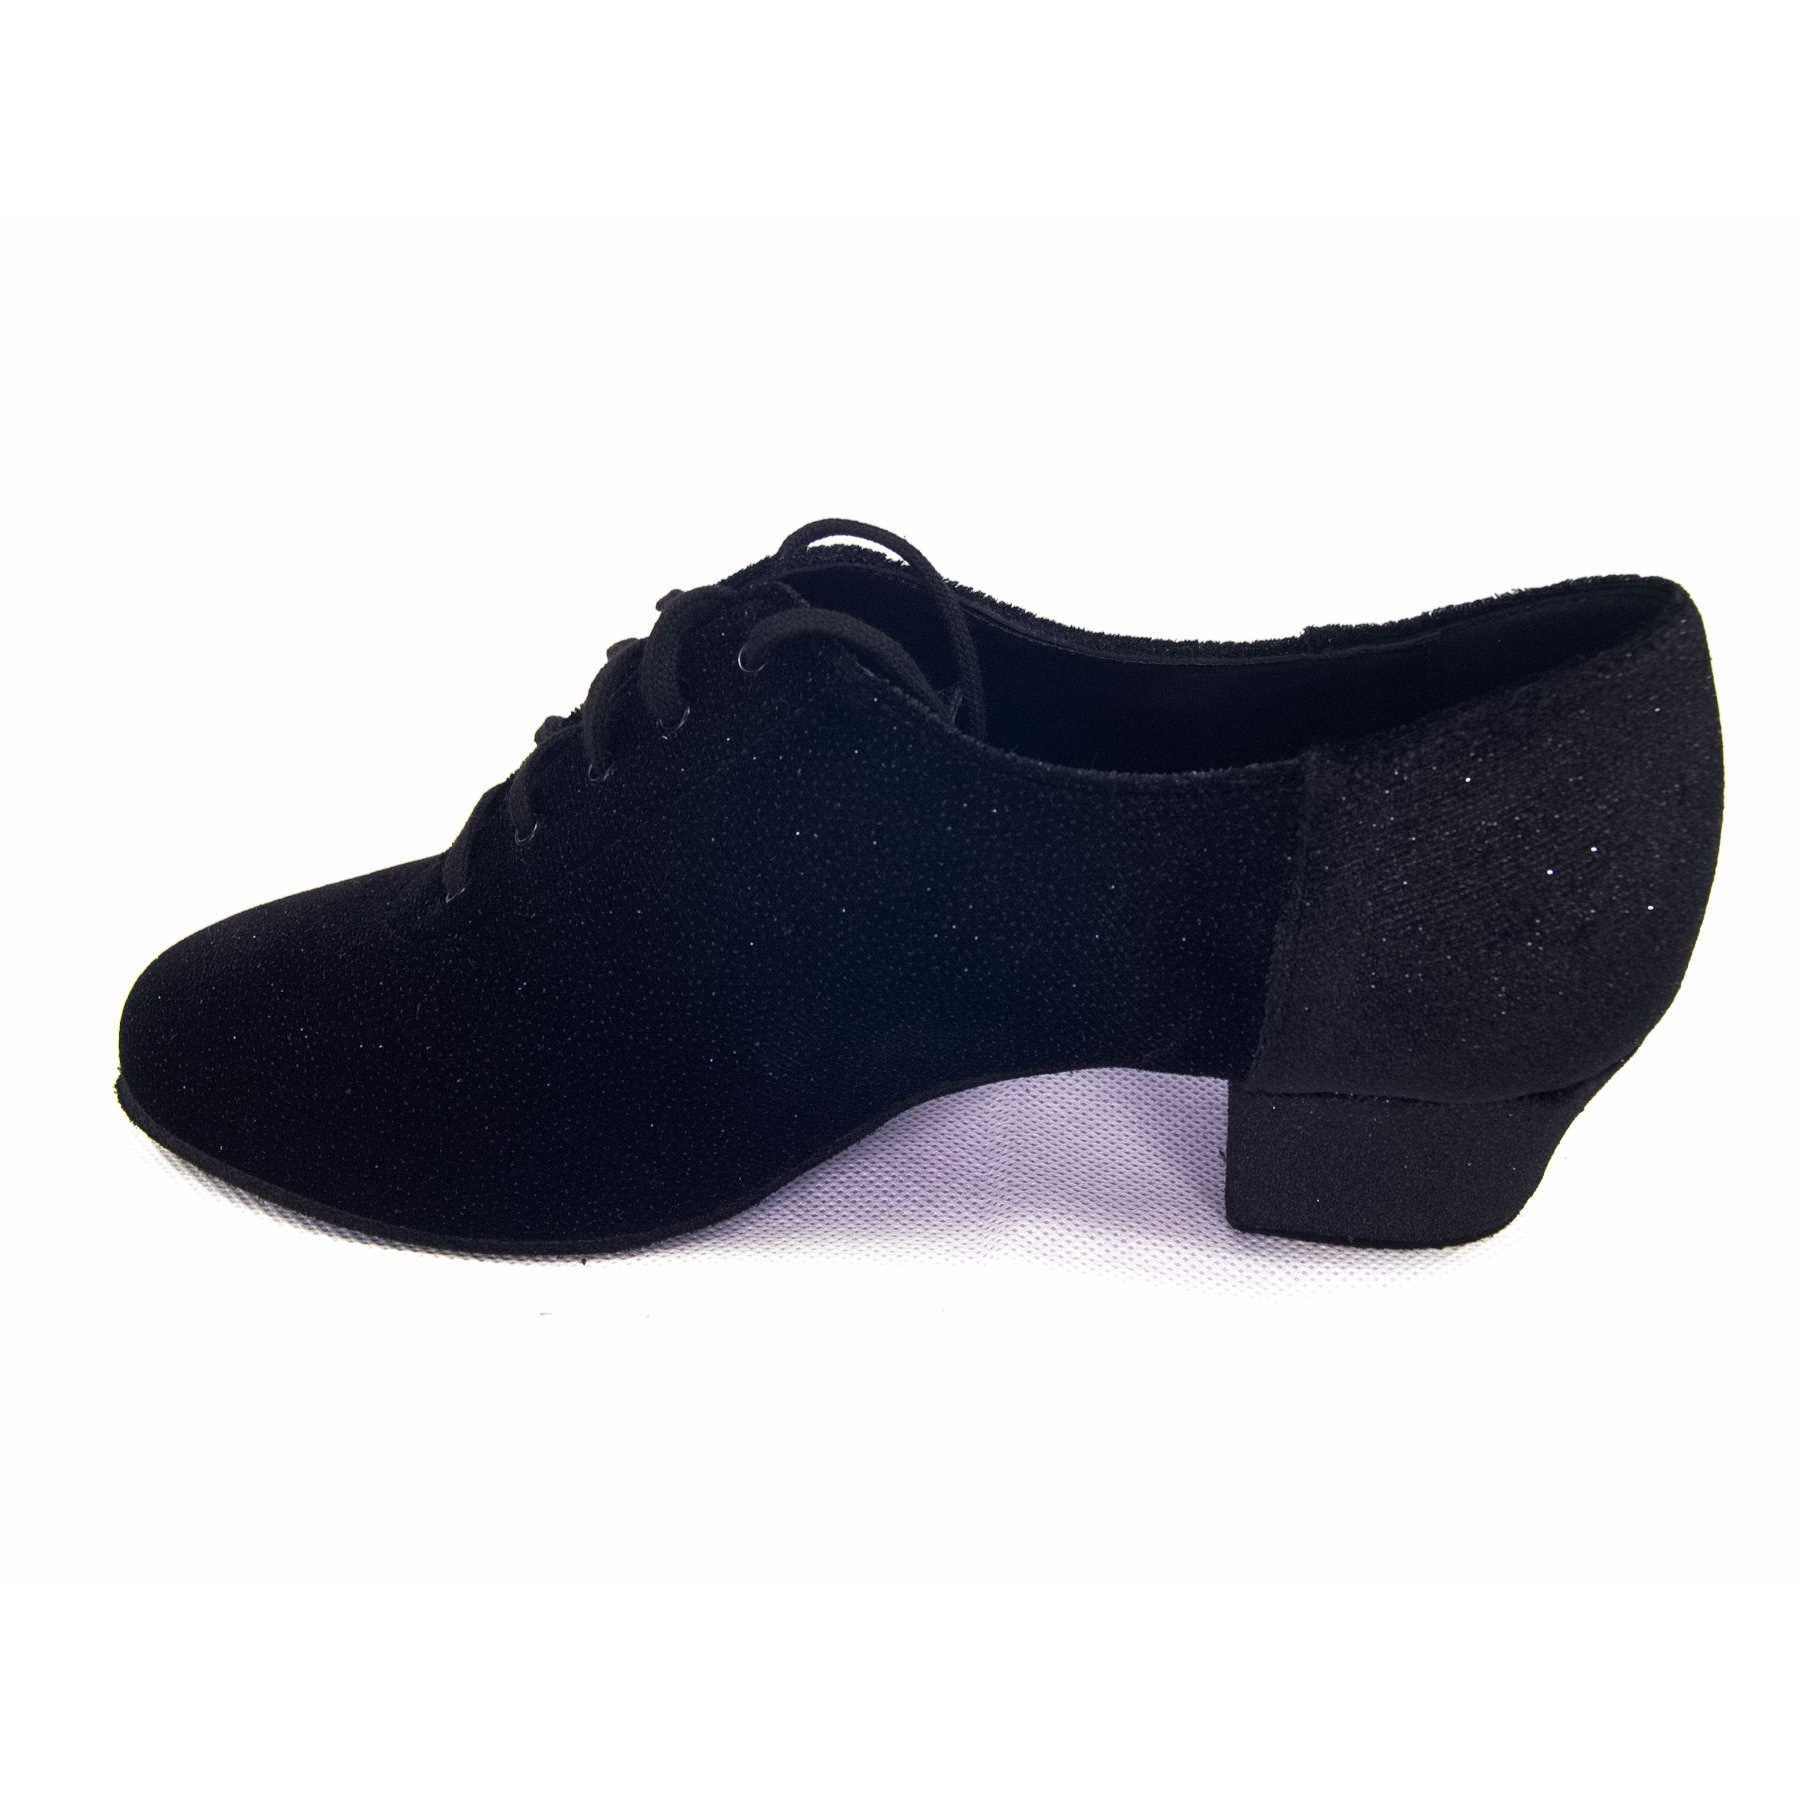 dance in style - los angeles Italian made women dance shoe, 30 day return policy, flat rate shipping.